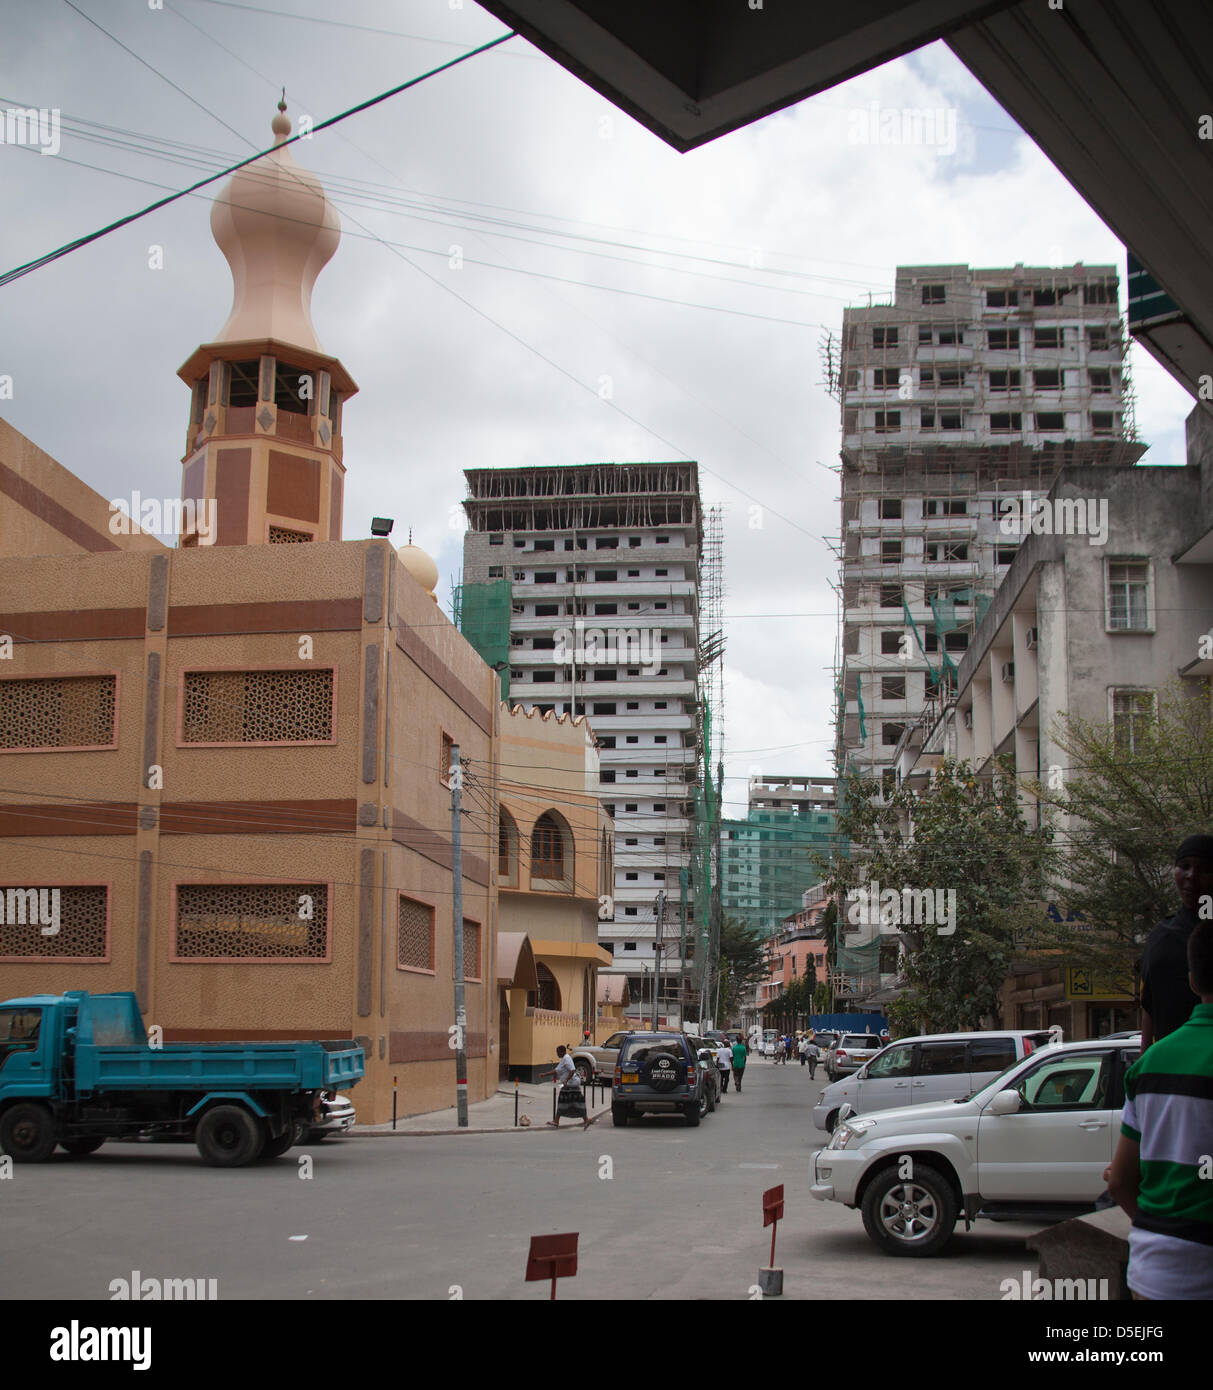 Dar es Salaam, Tanzania. View along Indira Gandhi Street with Shia Ithnasheri Mosque on left, 5 months before the - Stock Image